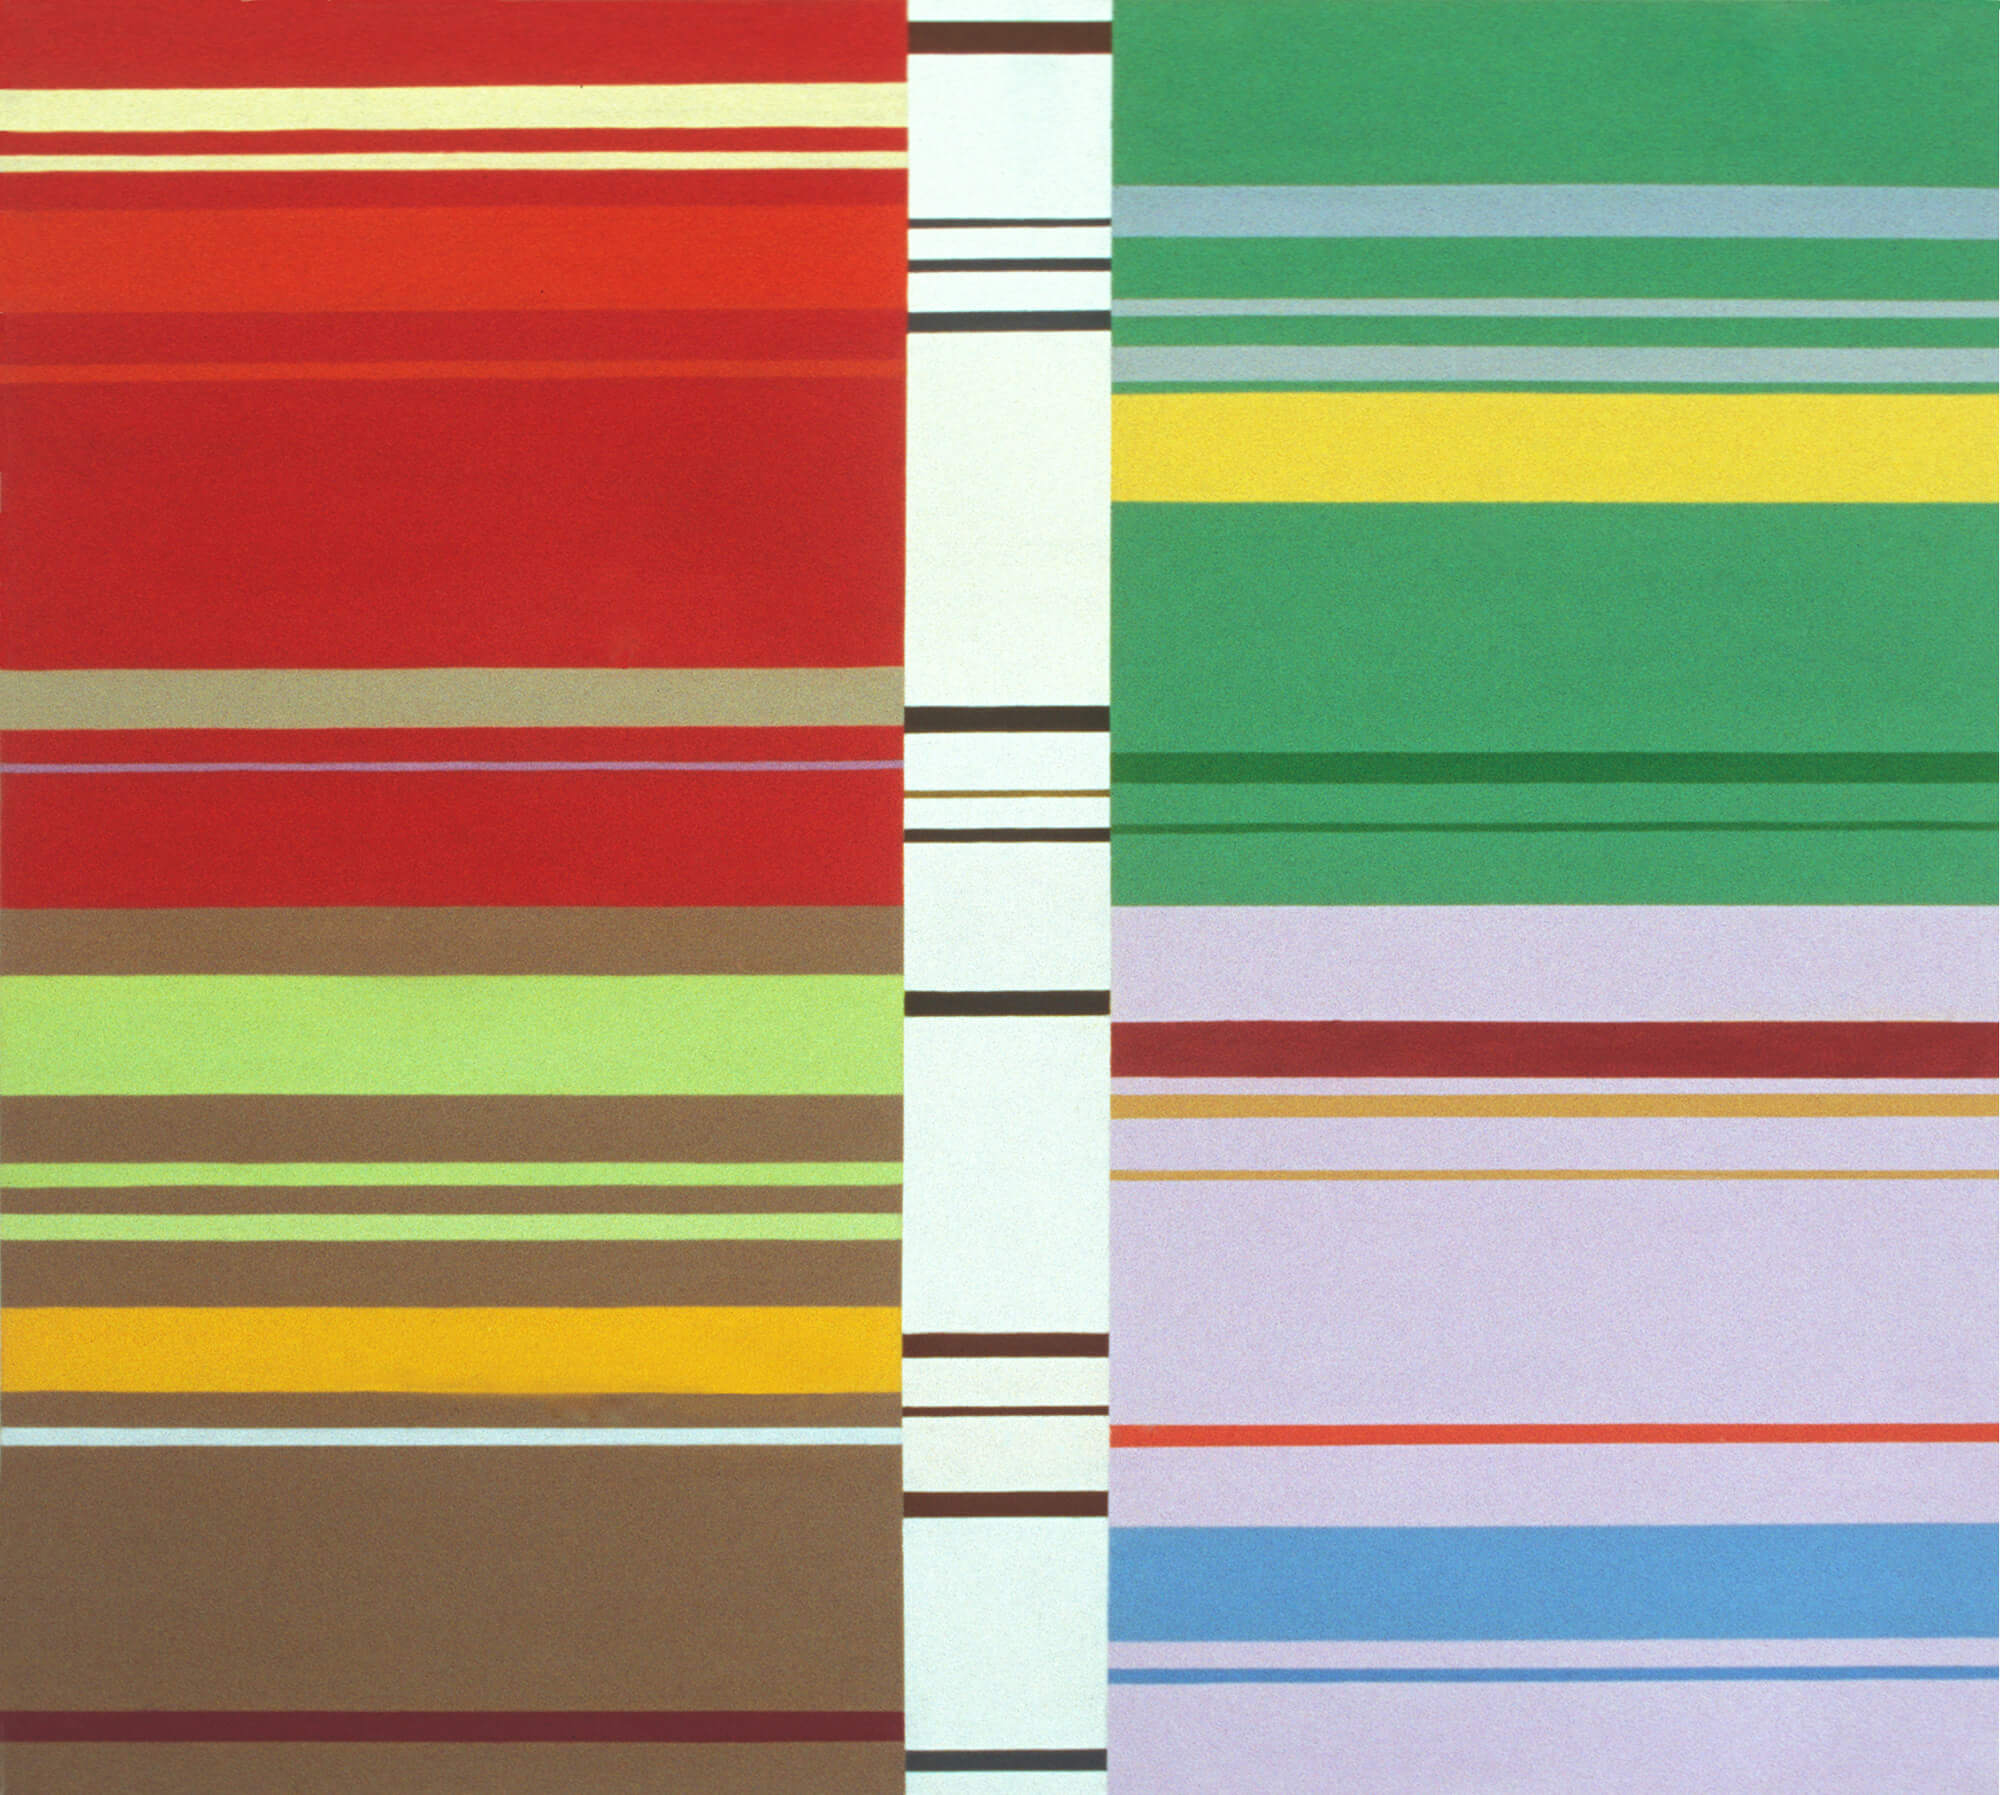 No title. Oil tempera on aluminum sheet, 107 x 118 cm, 2001